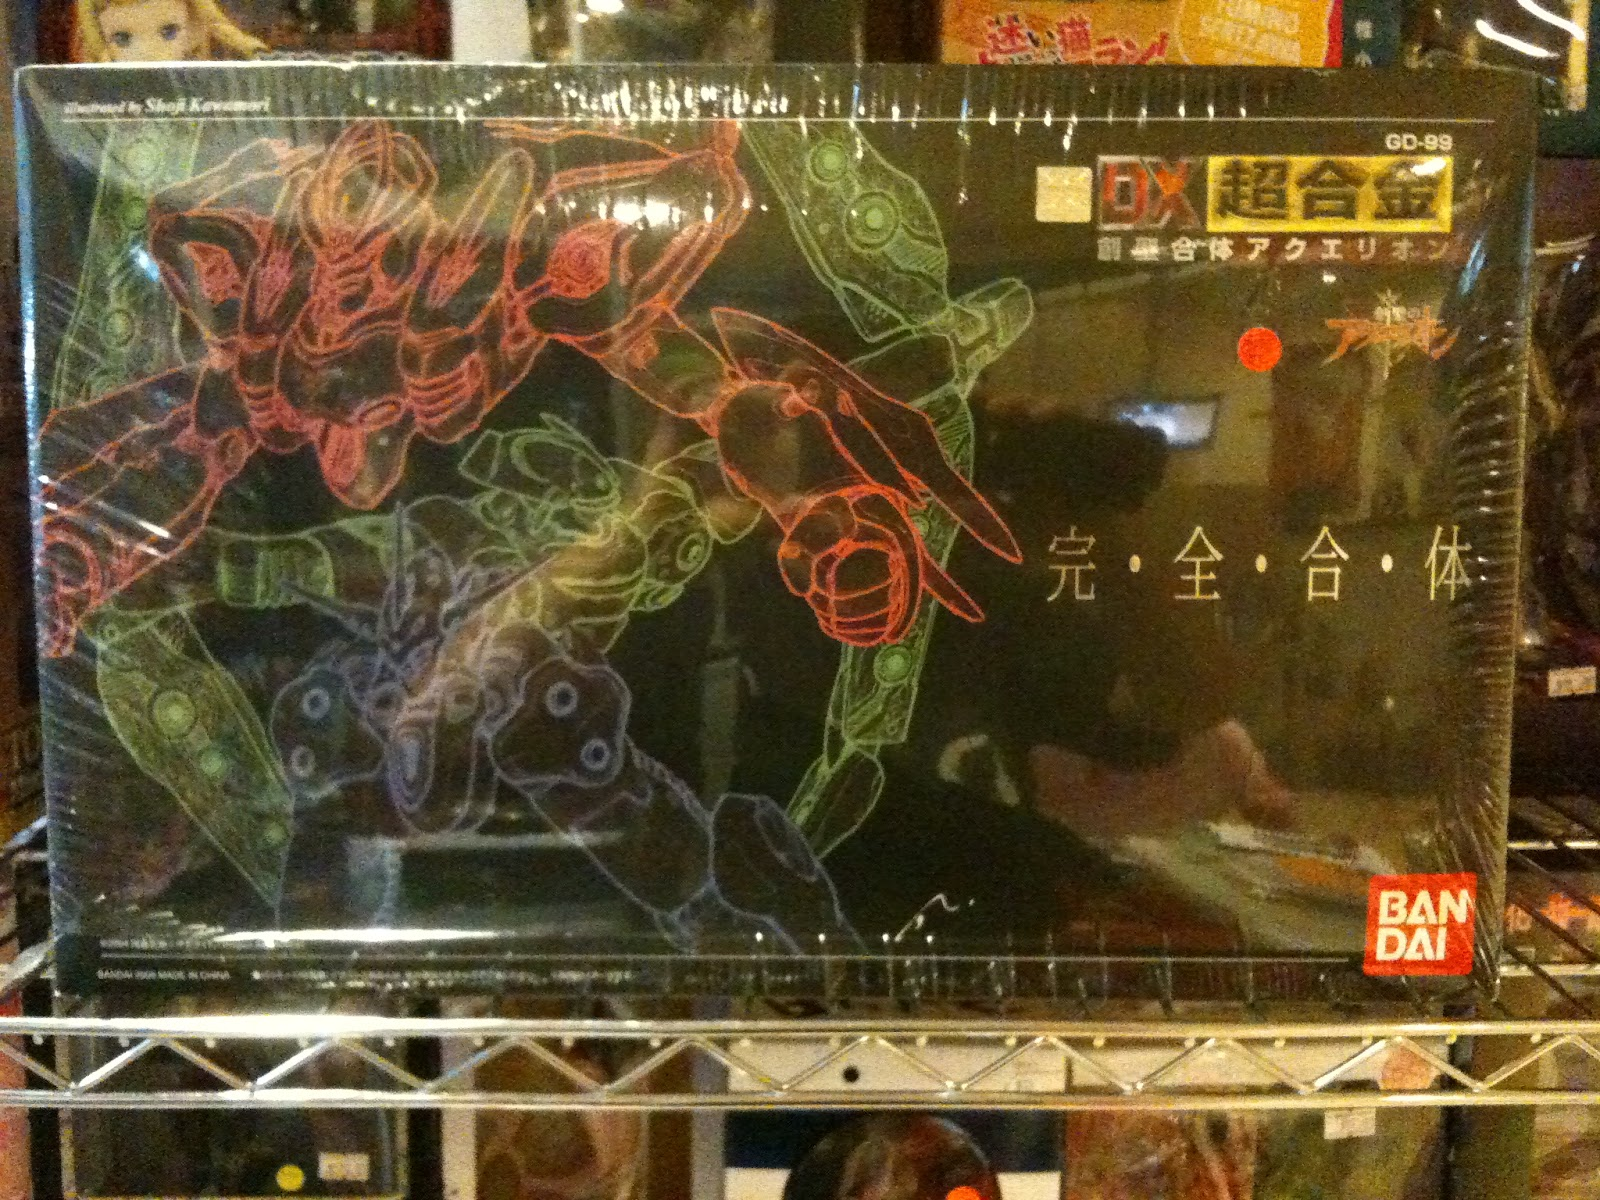 DX GD 99 Aquarion Mint In Sealed Box MISB